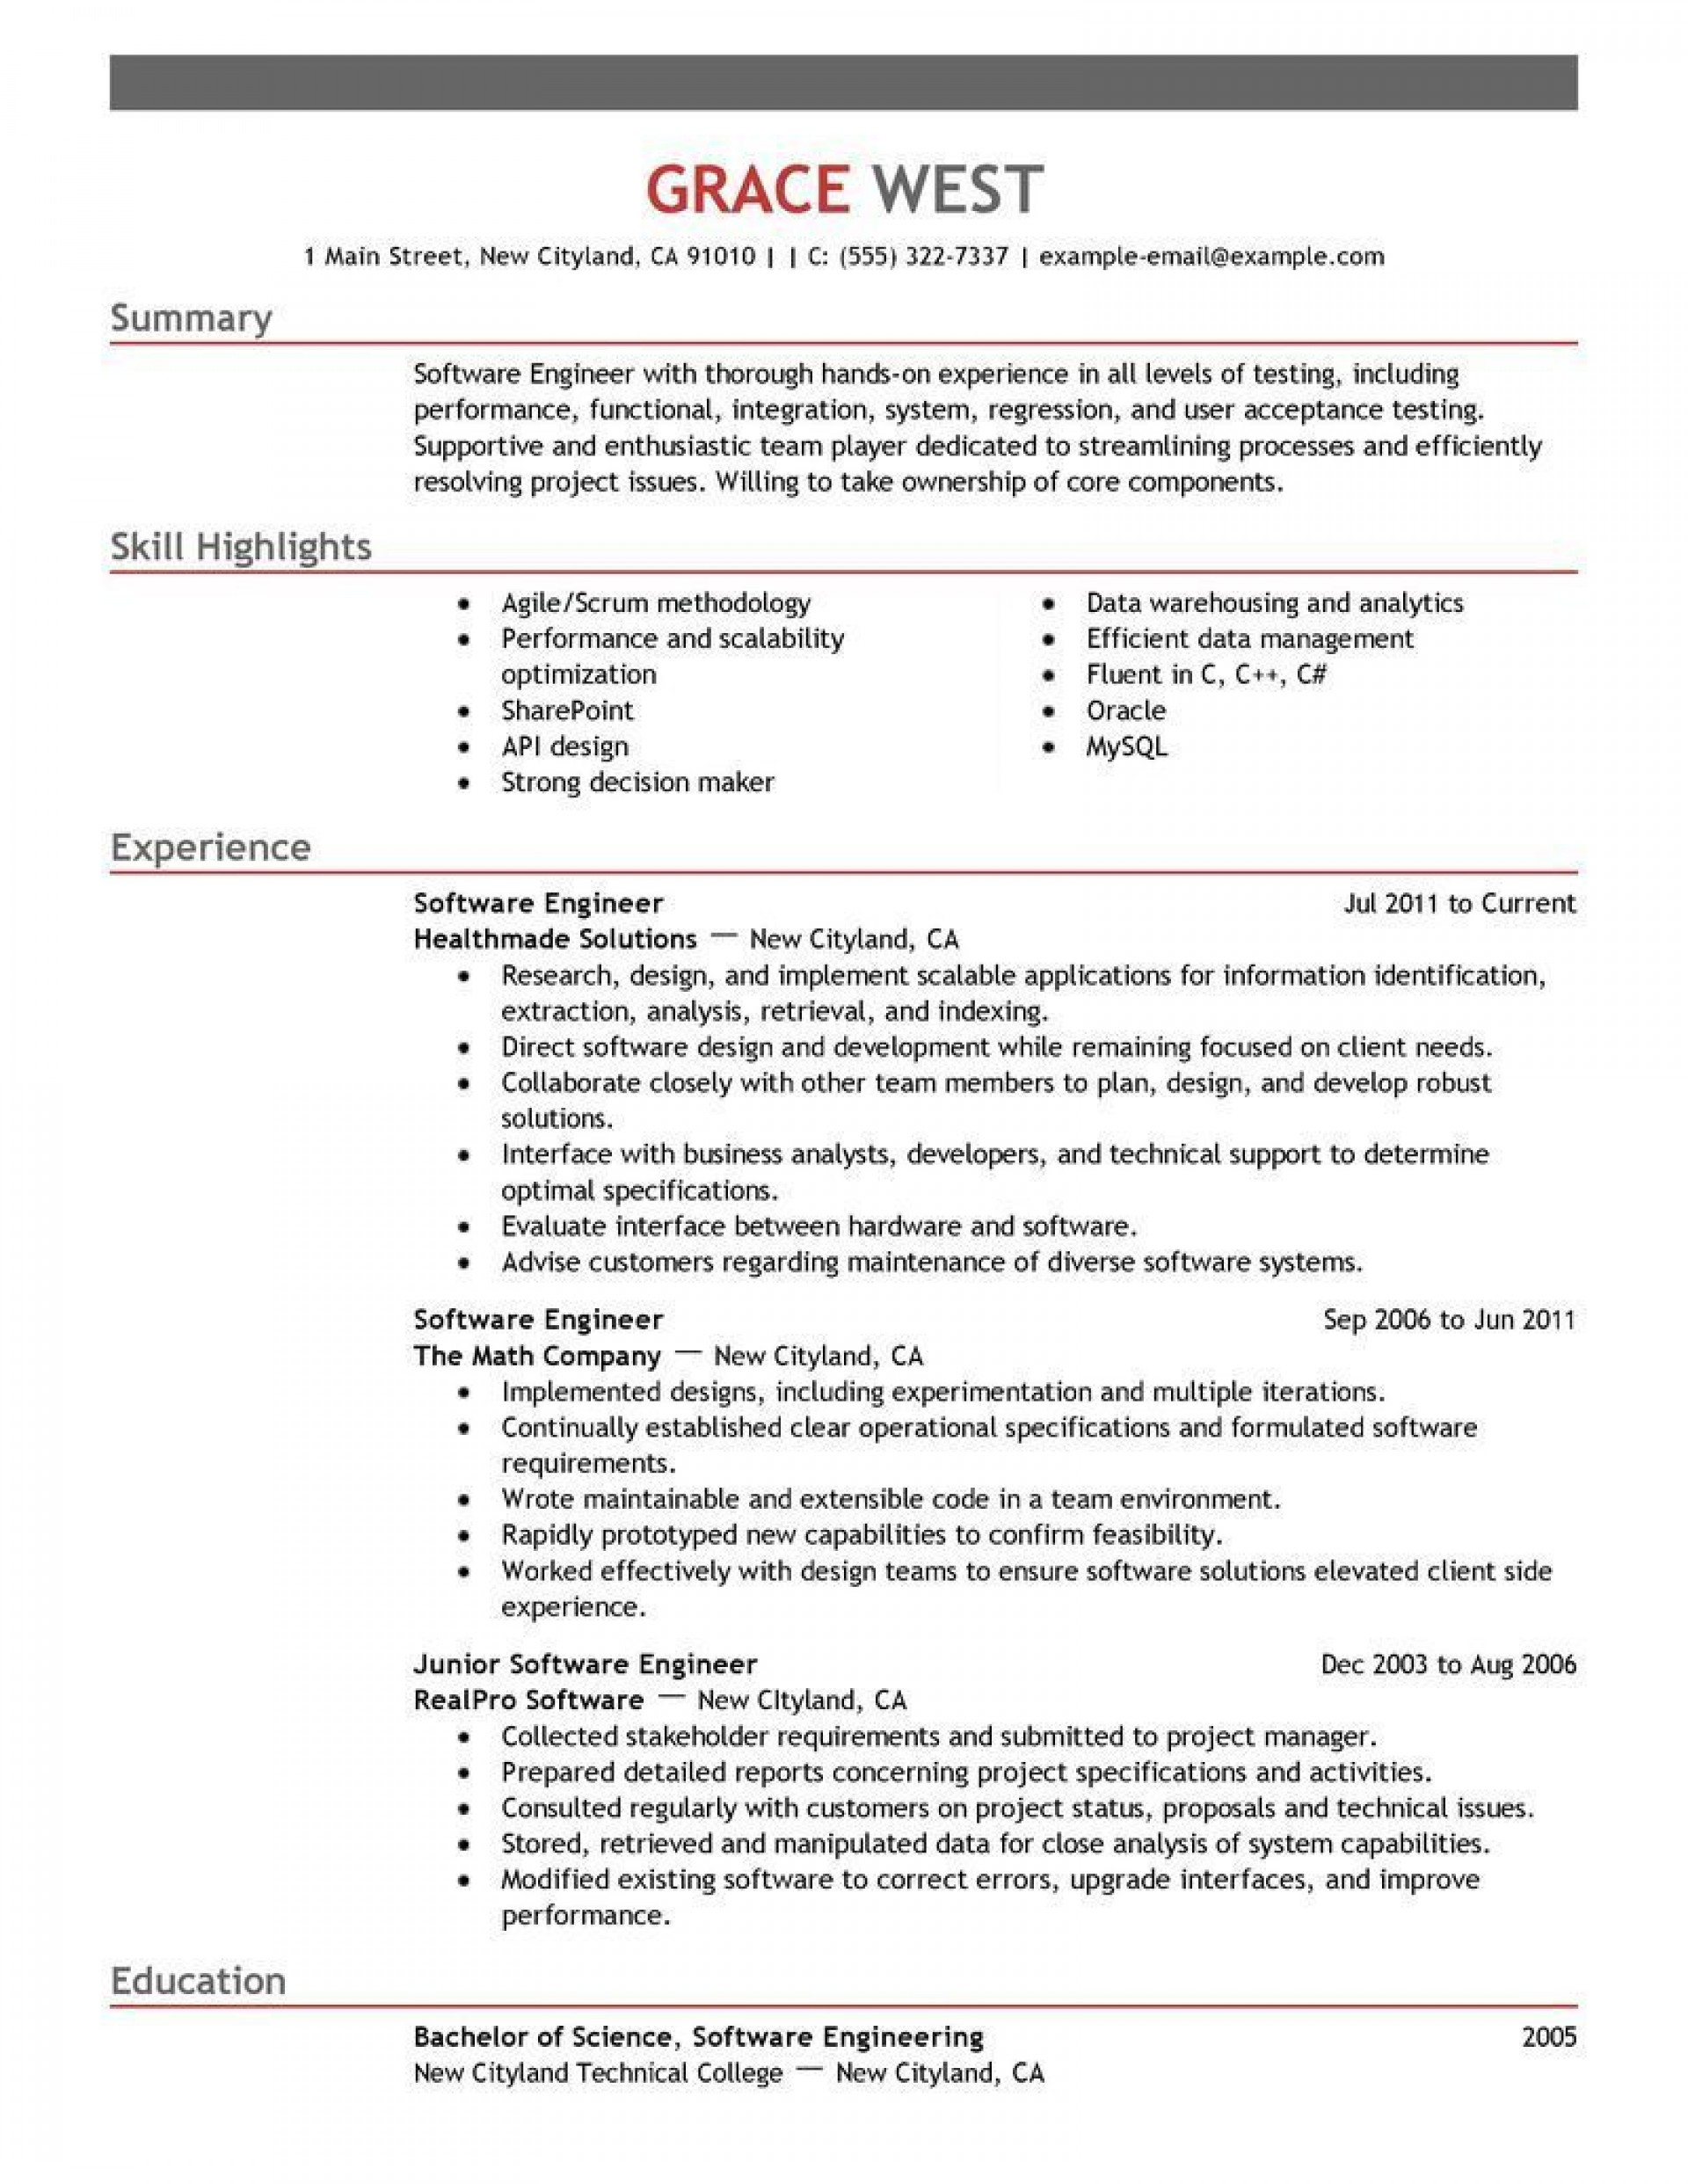 001 Breathtaking Software Engineer Resume Template High Resolution  Word Format Free Download Microsoft1920